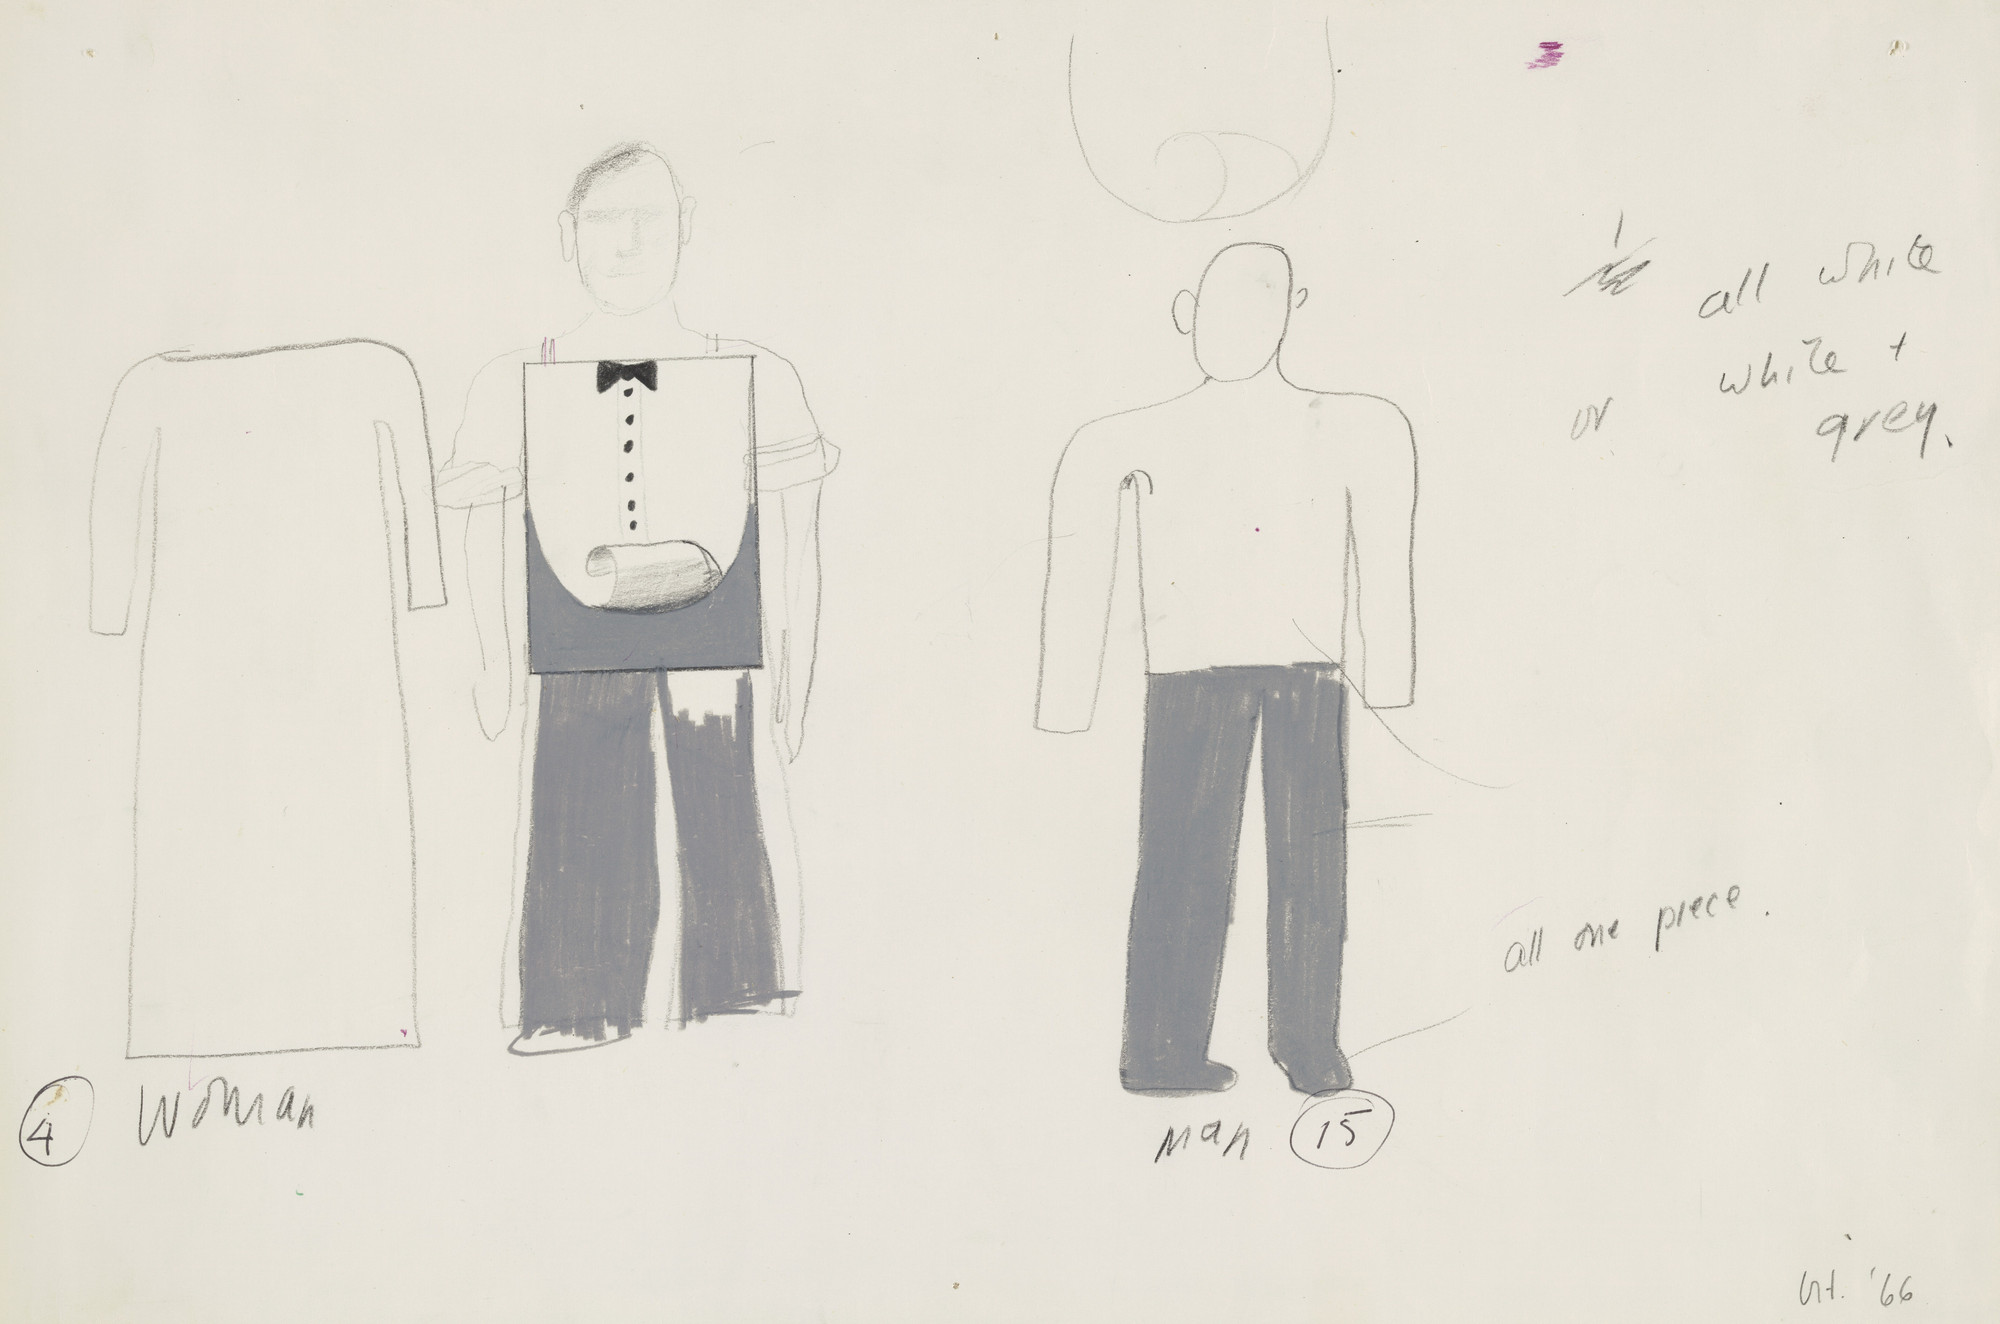 David Hockney. Woman, Man. Costume designs for the play Ubu Roi. 1966